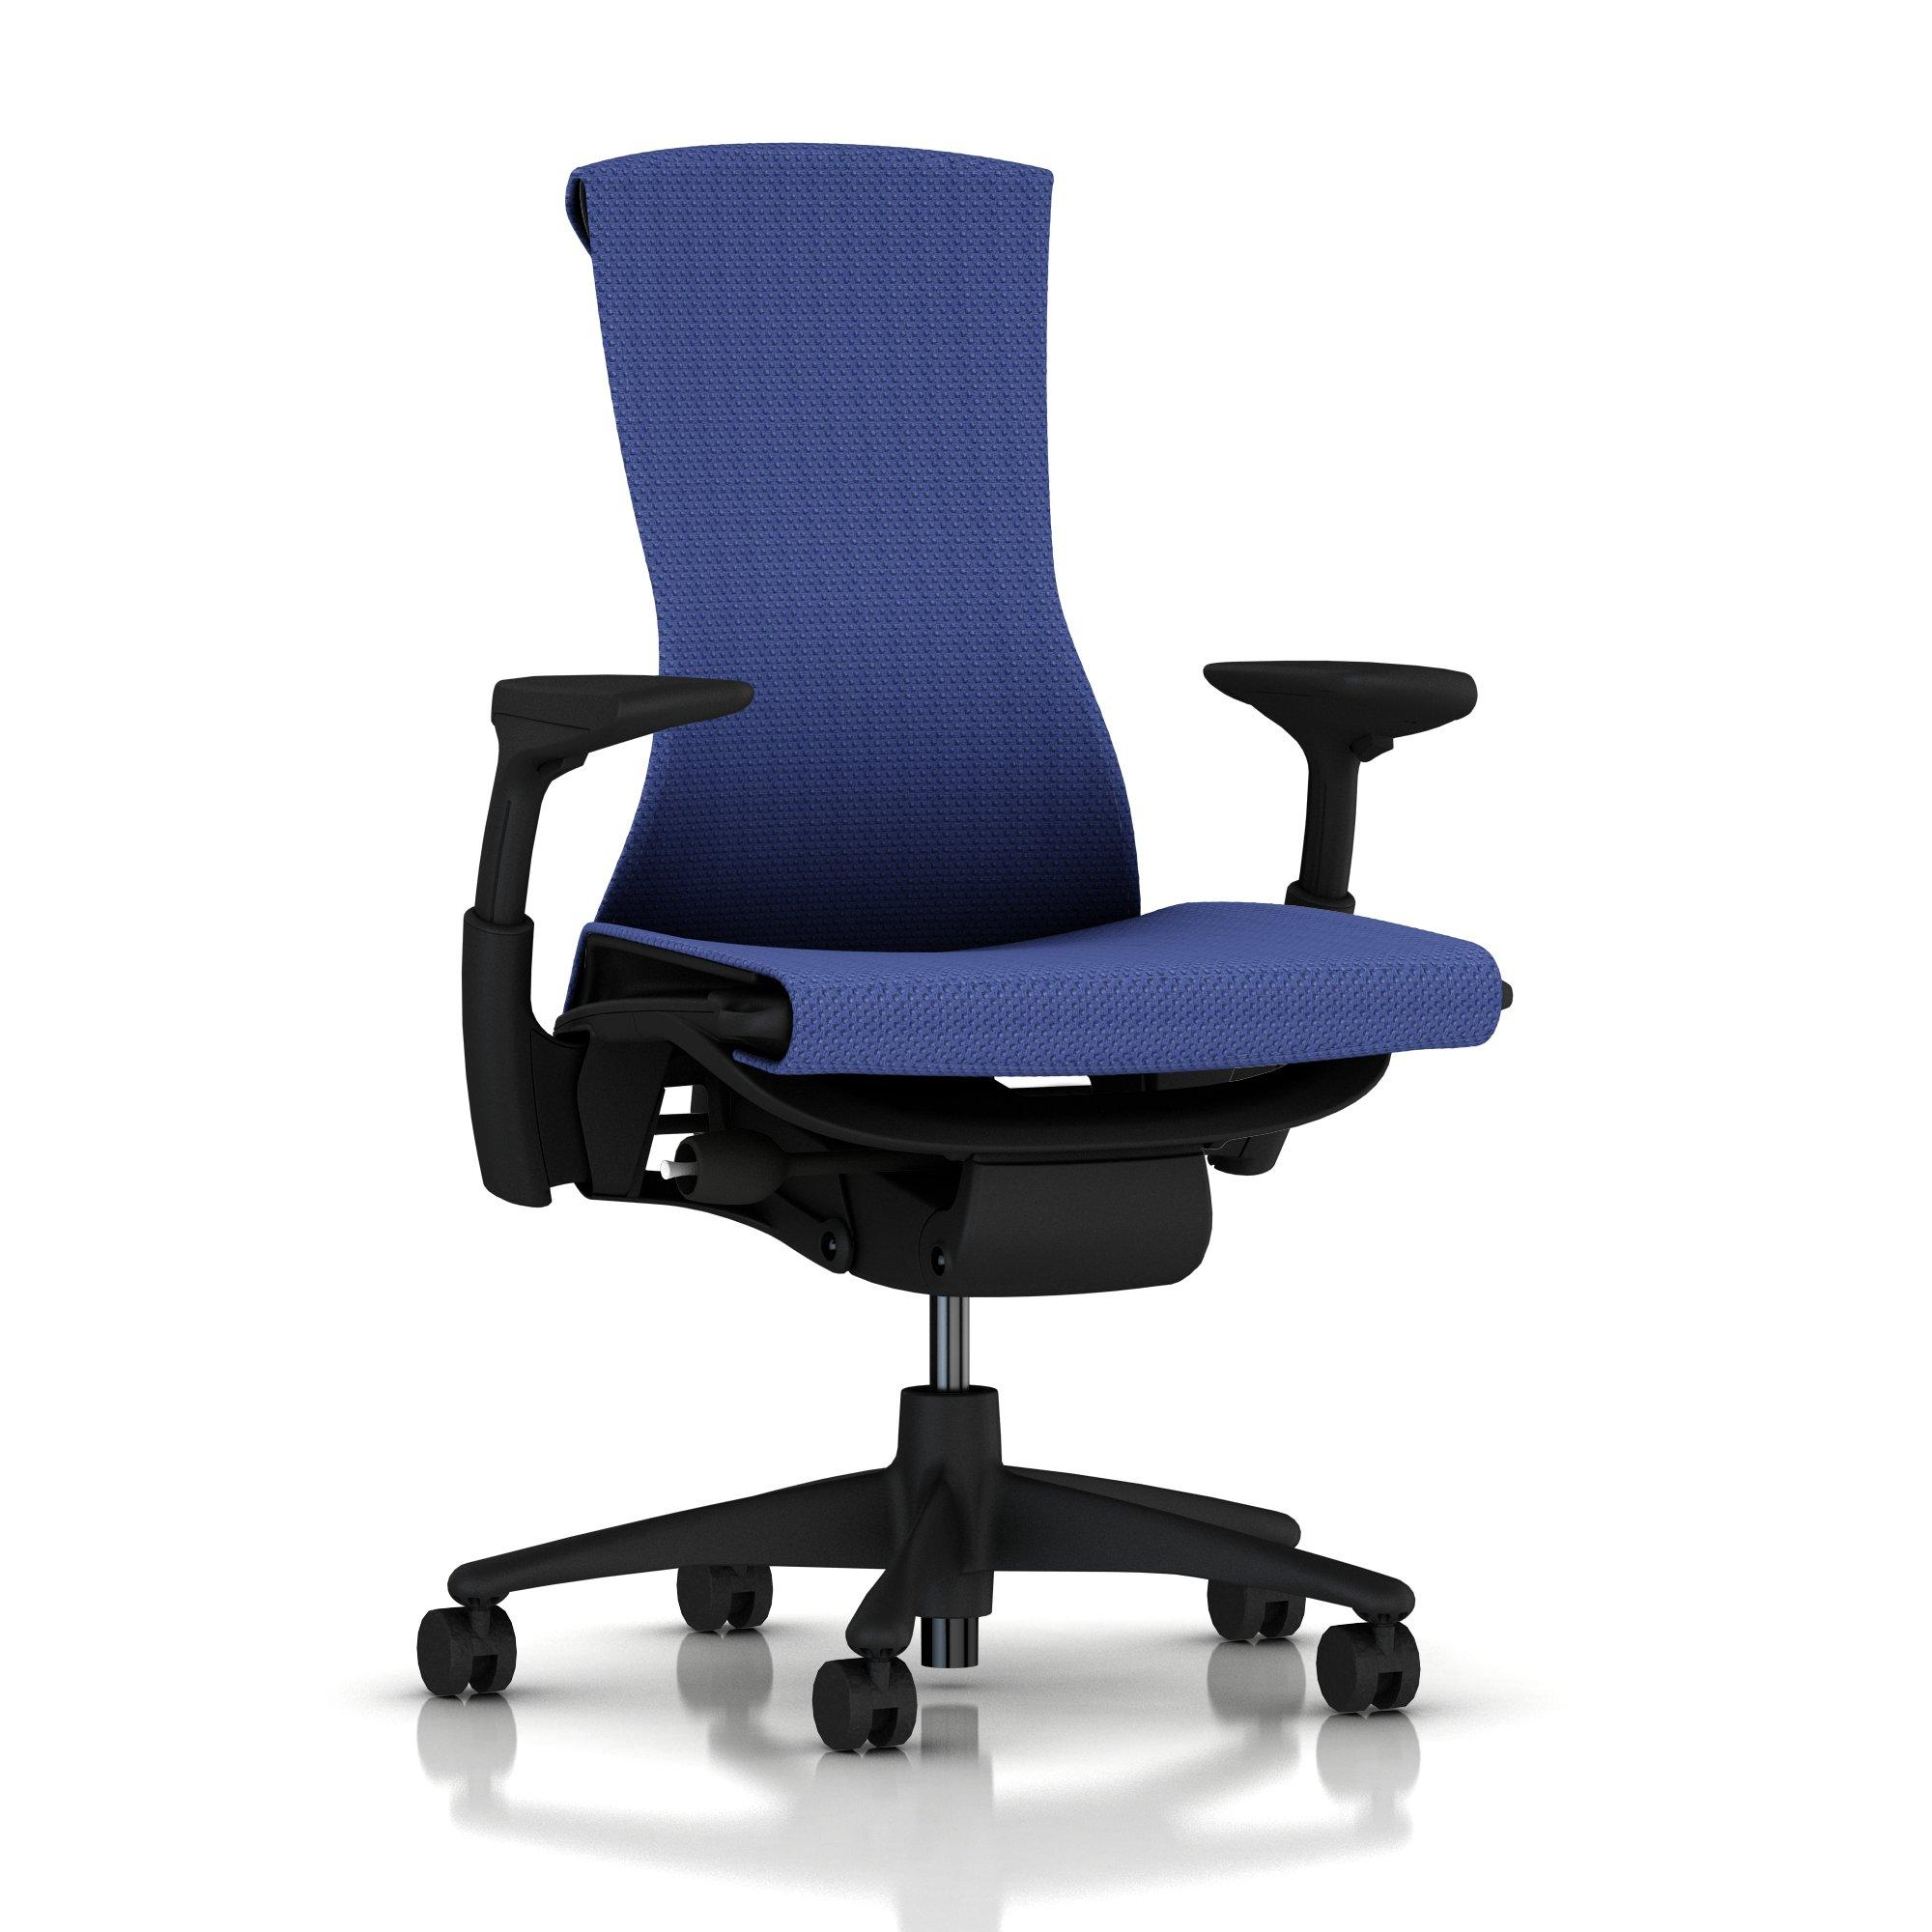 Embody Chair Iris Blue Balance with Graphite Frame by Herman Miller  sc 1 st  The Perfect Chair Ergonomic Zero Gravity Recliner Chair from Human ... & Herman Miller Embody Chair Iris Blue Balance with Graphite Frame and ...